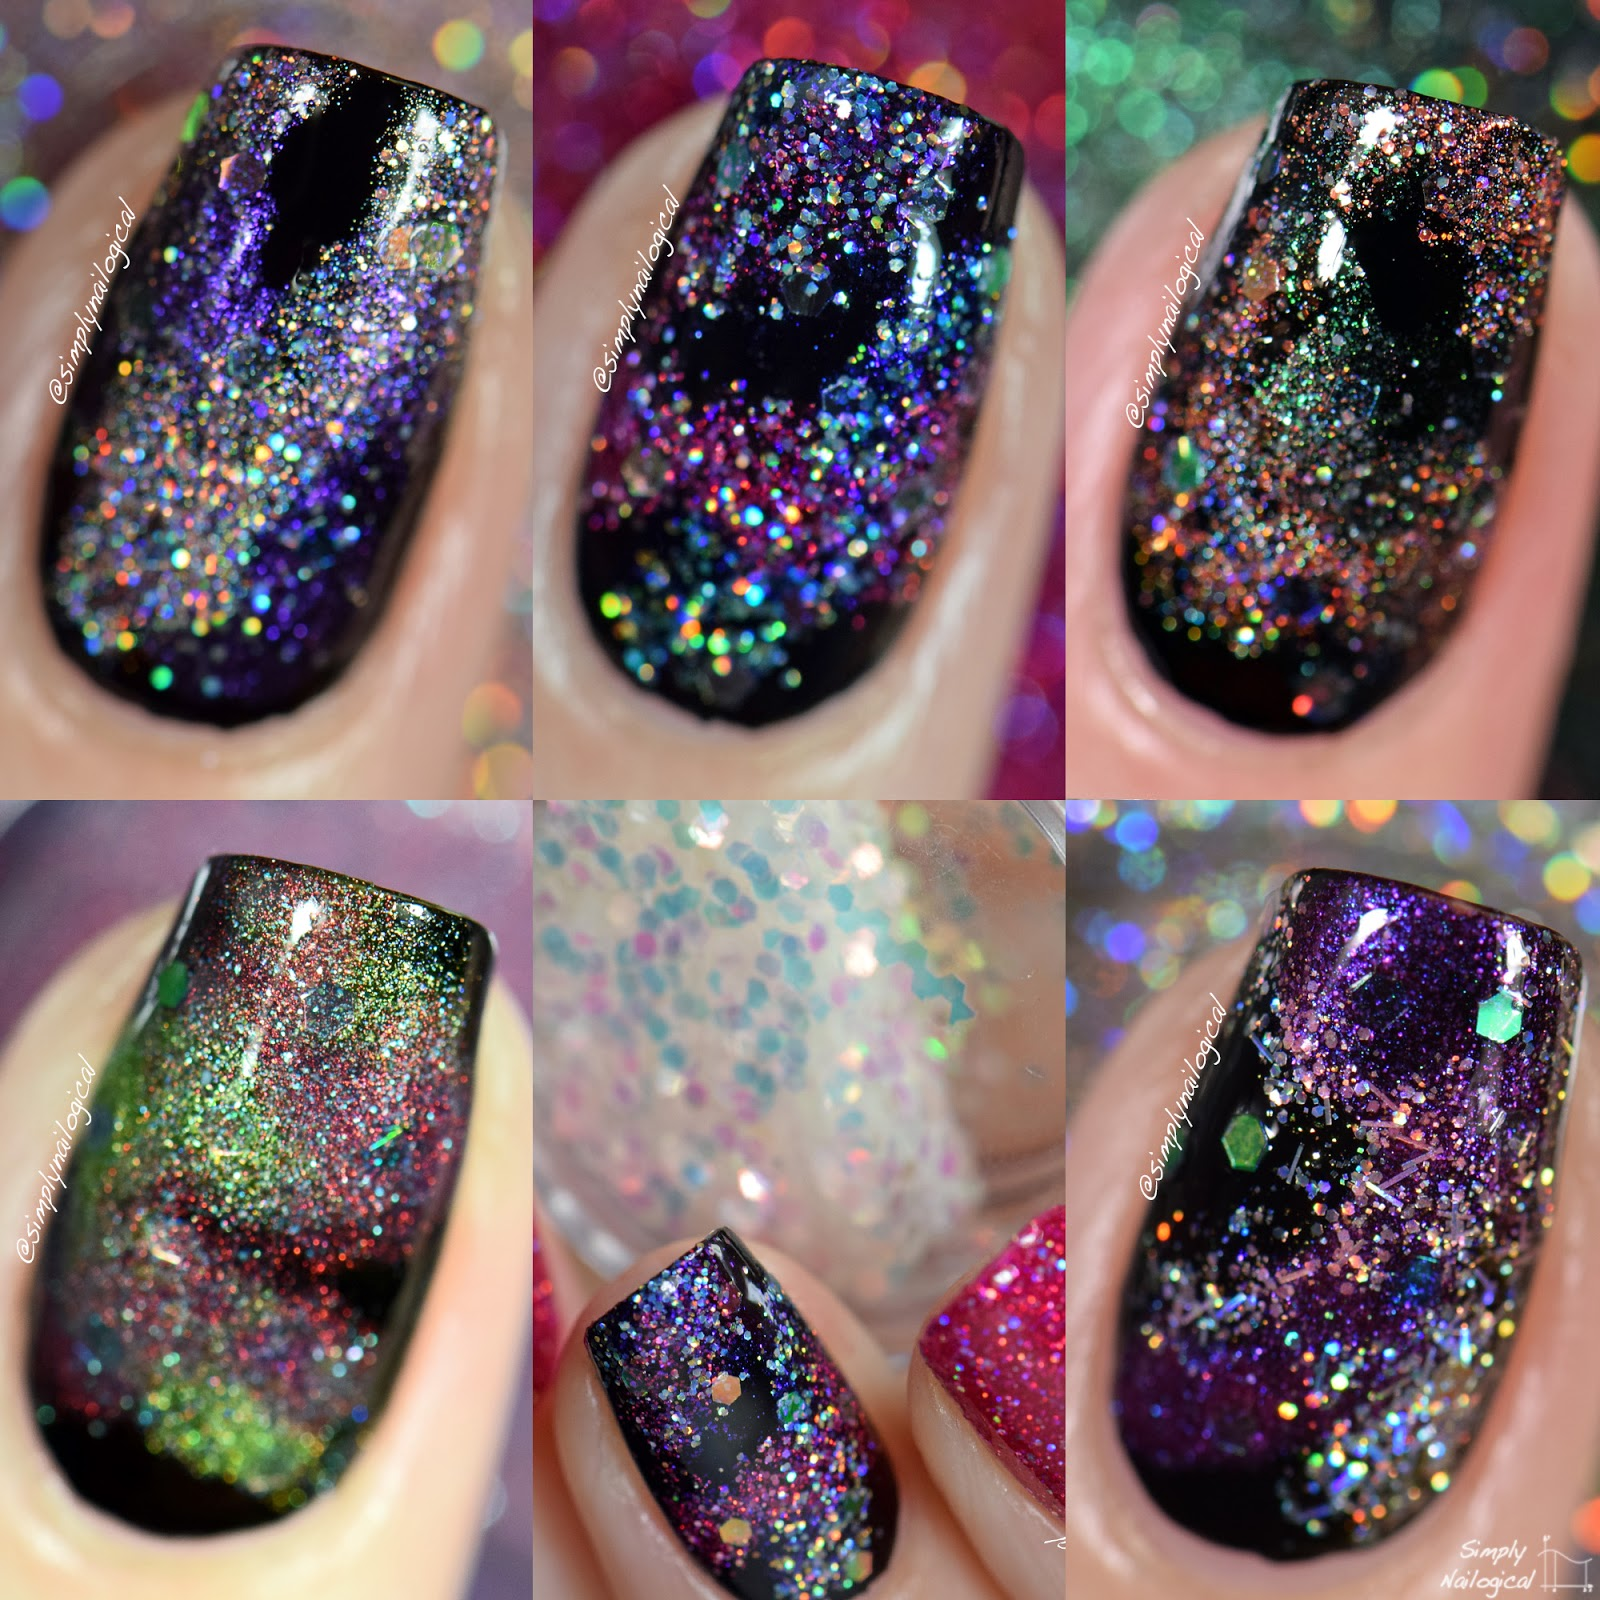 Polished by KPT - Cosmic Xodus I accent nails